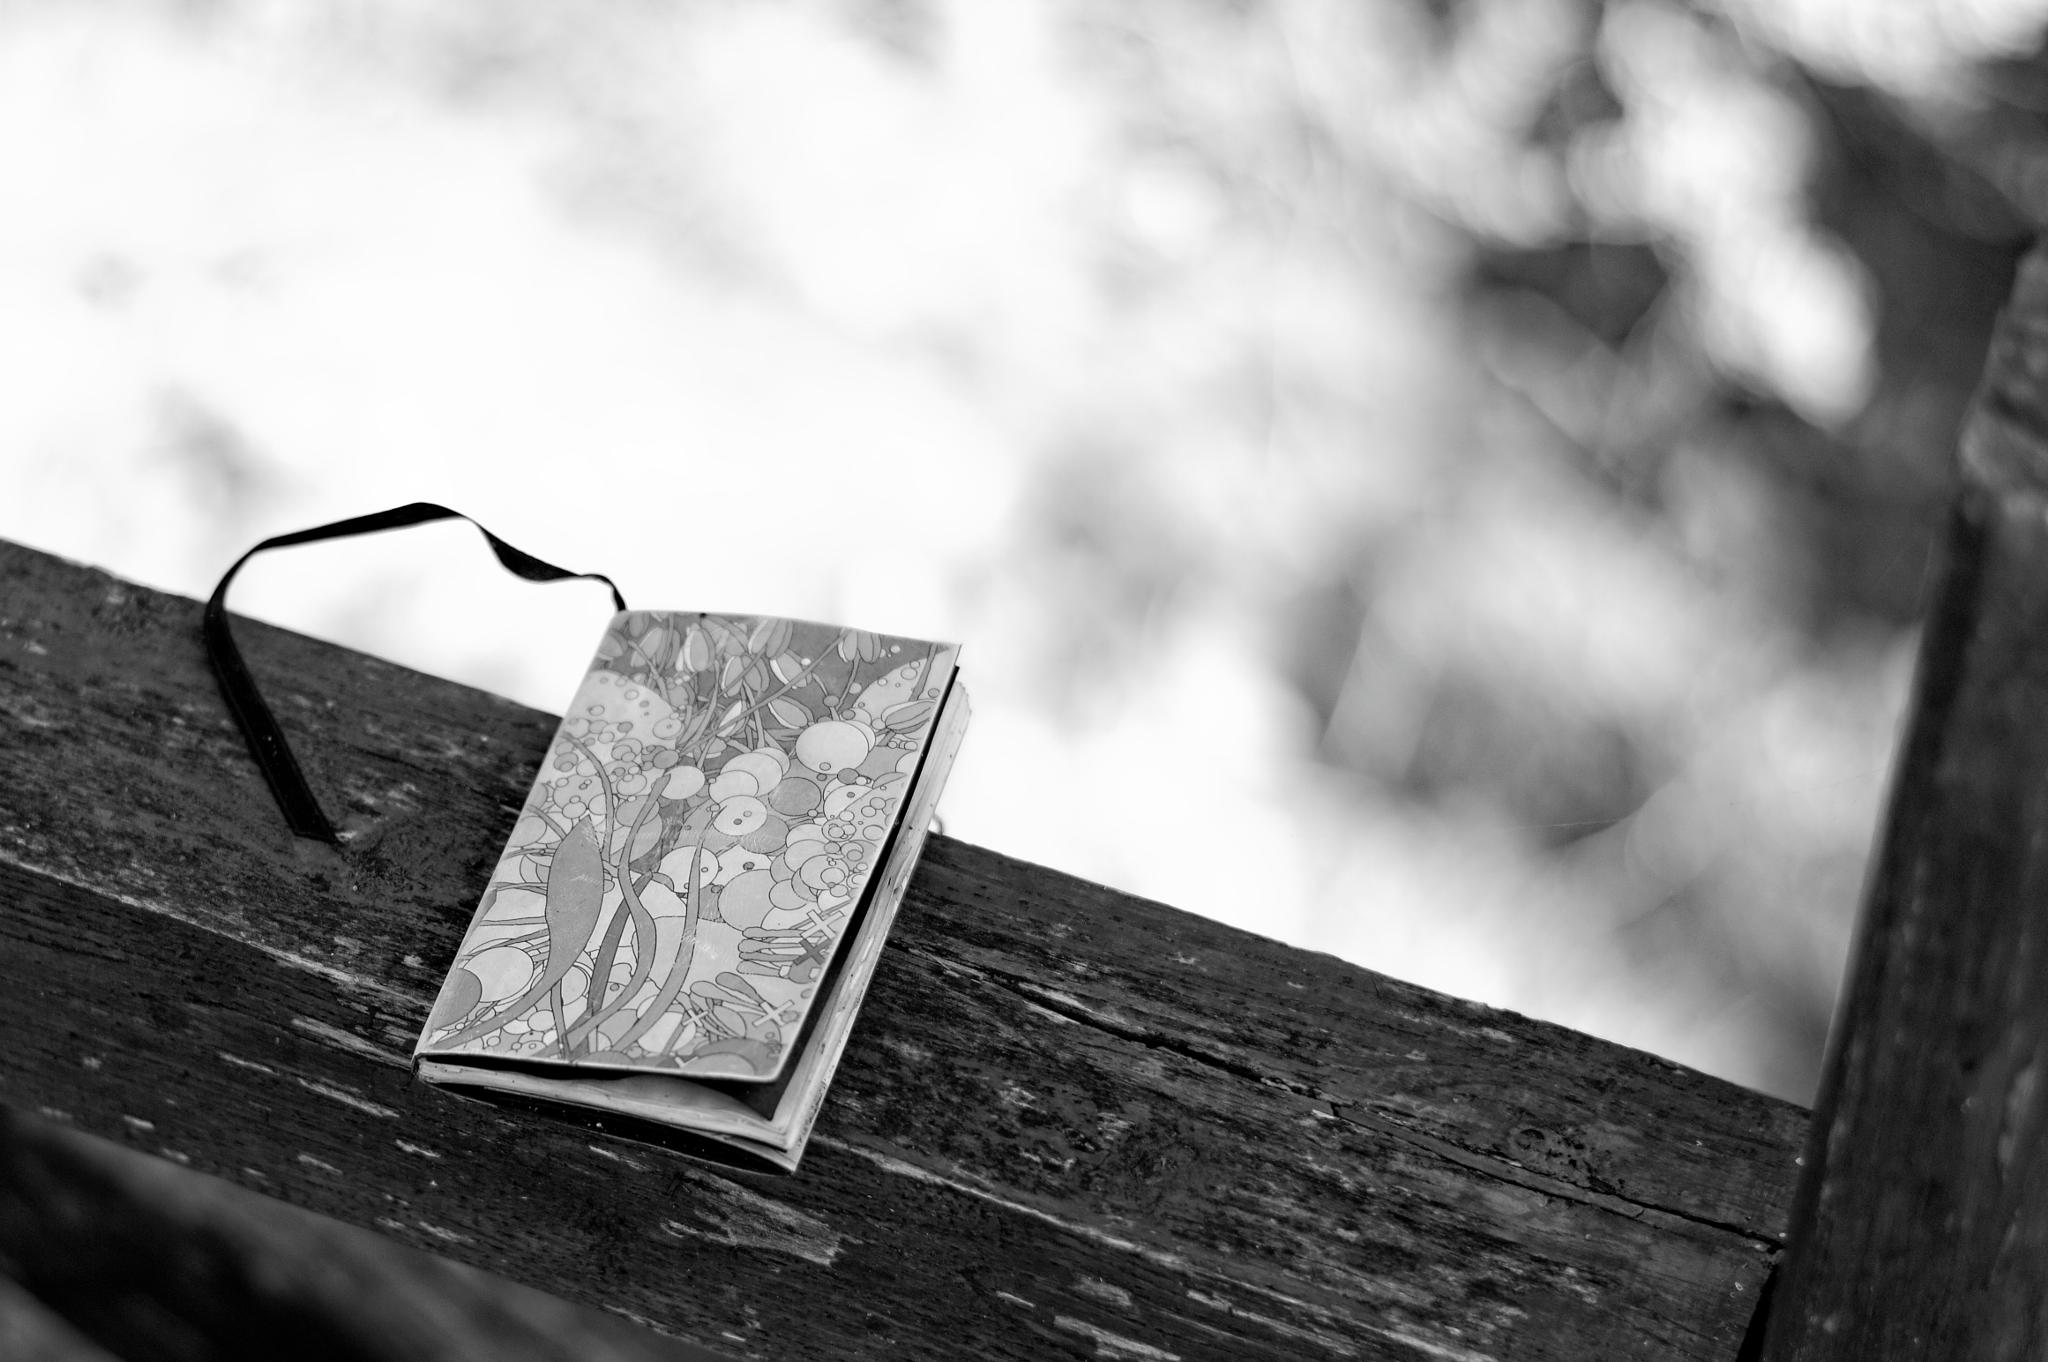 Diary of dreams by Costas Chrisovergis